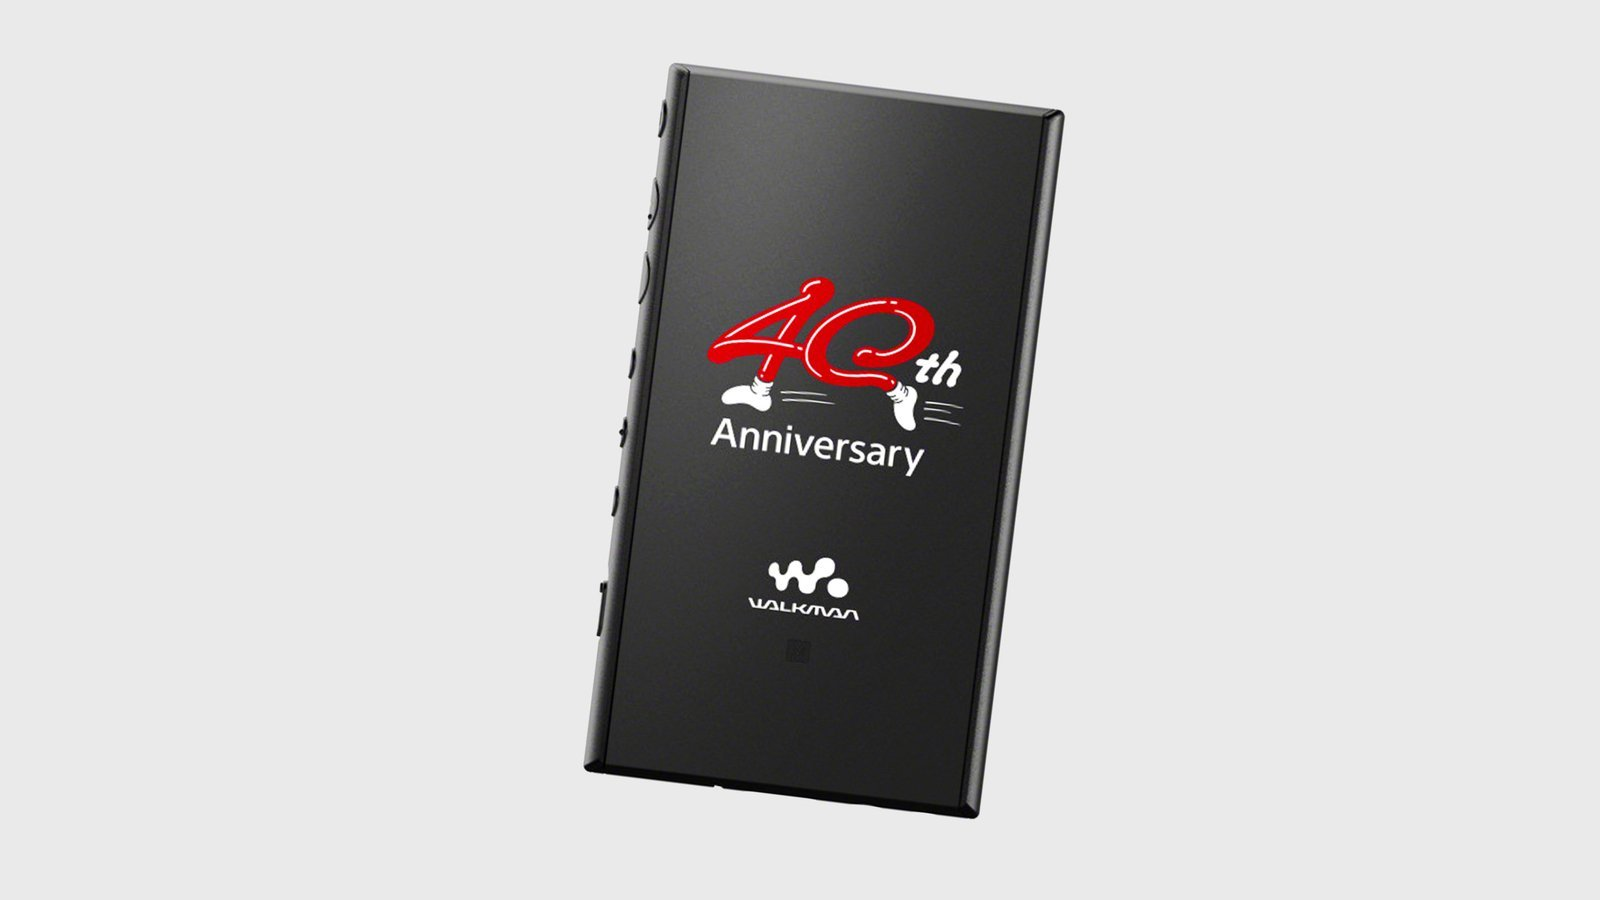 Sony announced in September 2019 that it was releasing a special 40th anniversary edition of the Sony Walkman. (Credit: Sony)